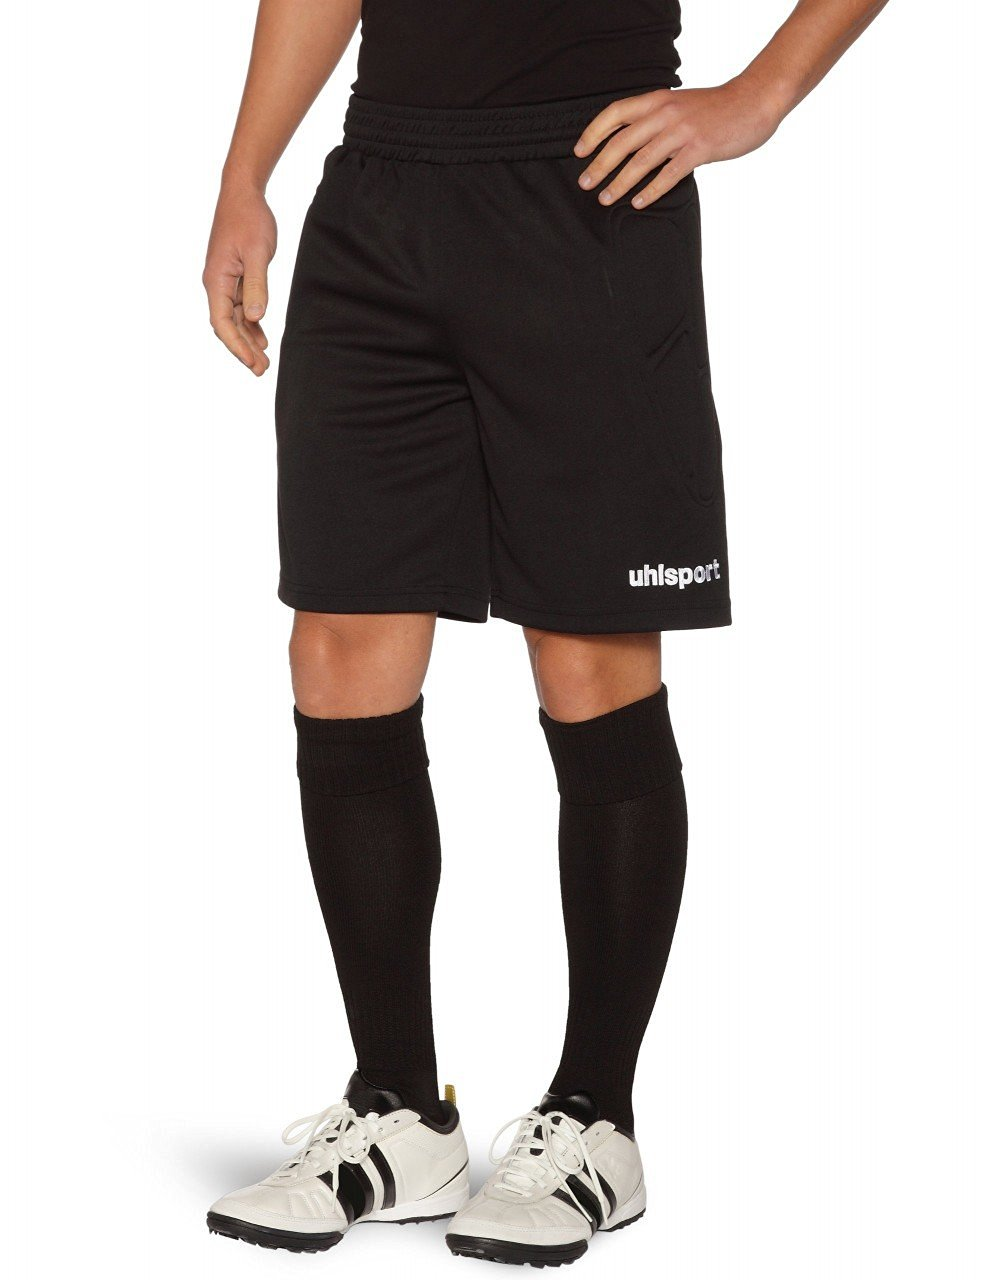 b82903011 Get Quotations · Uhlsport Mens Sidestep Goalkeeper Shorts